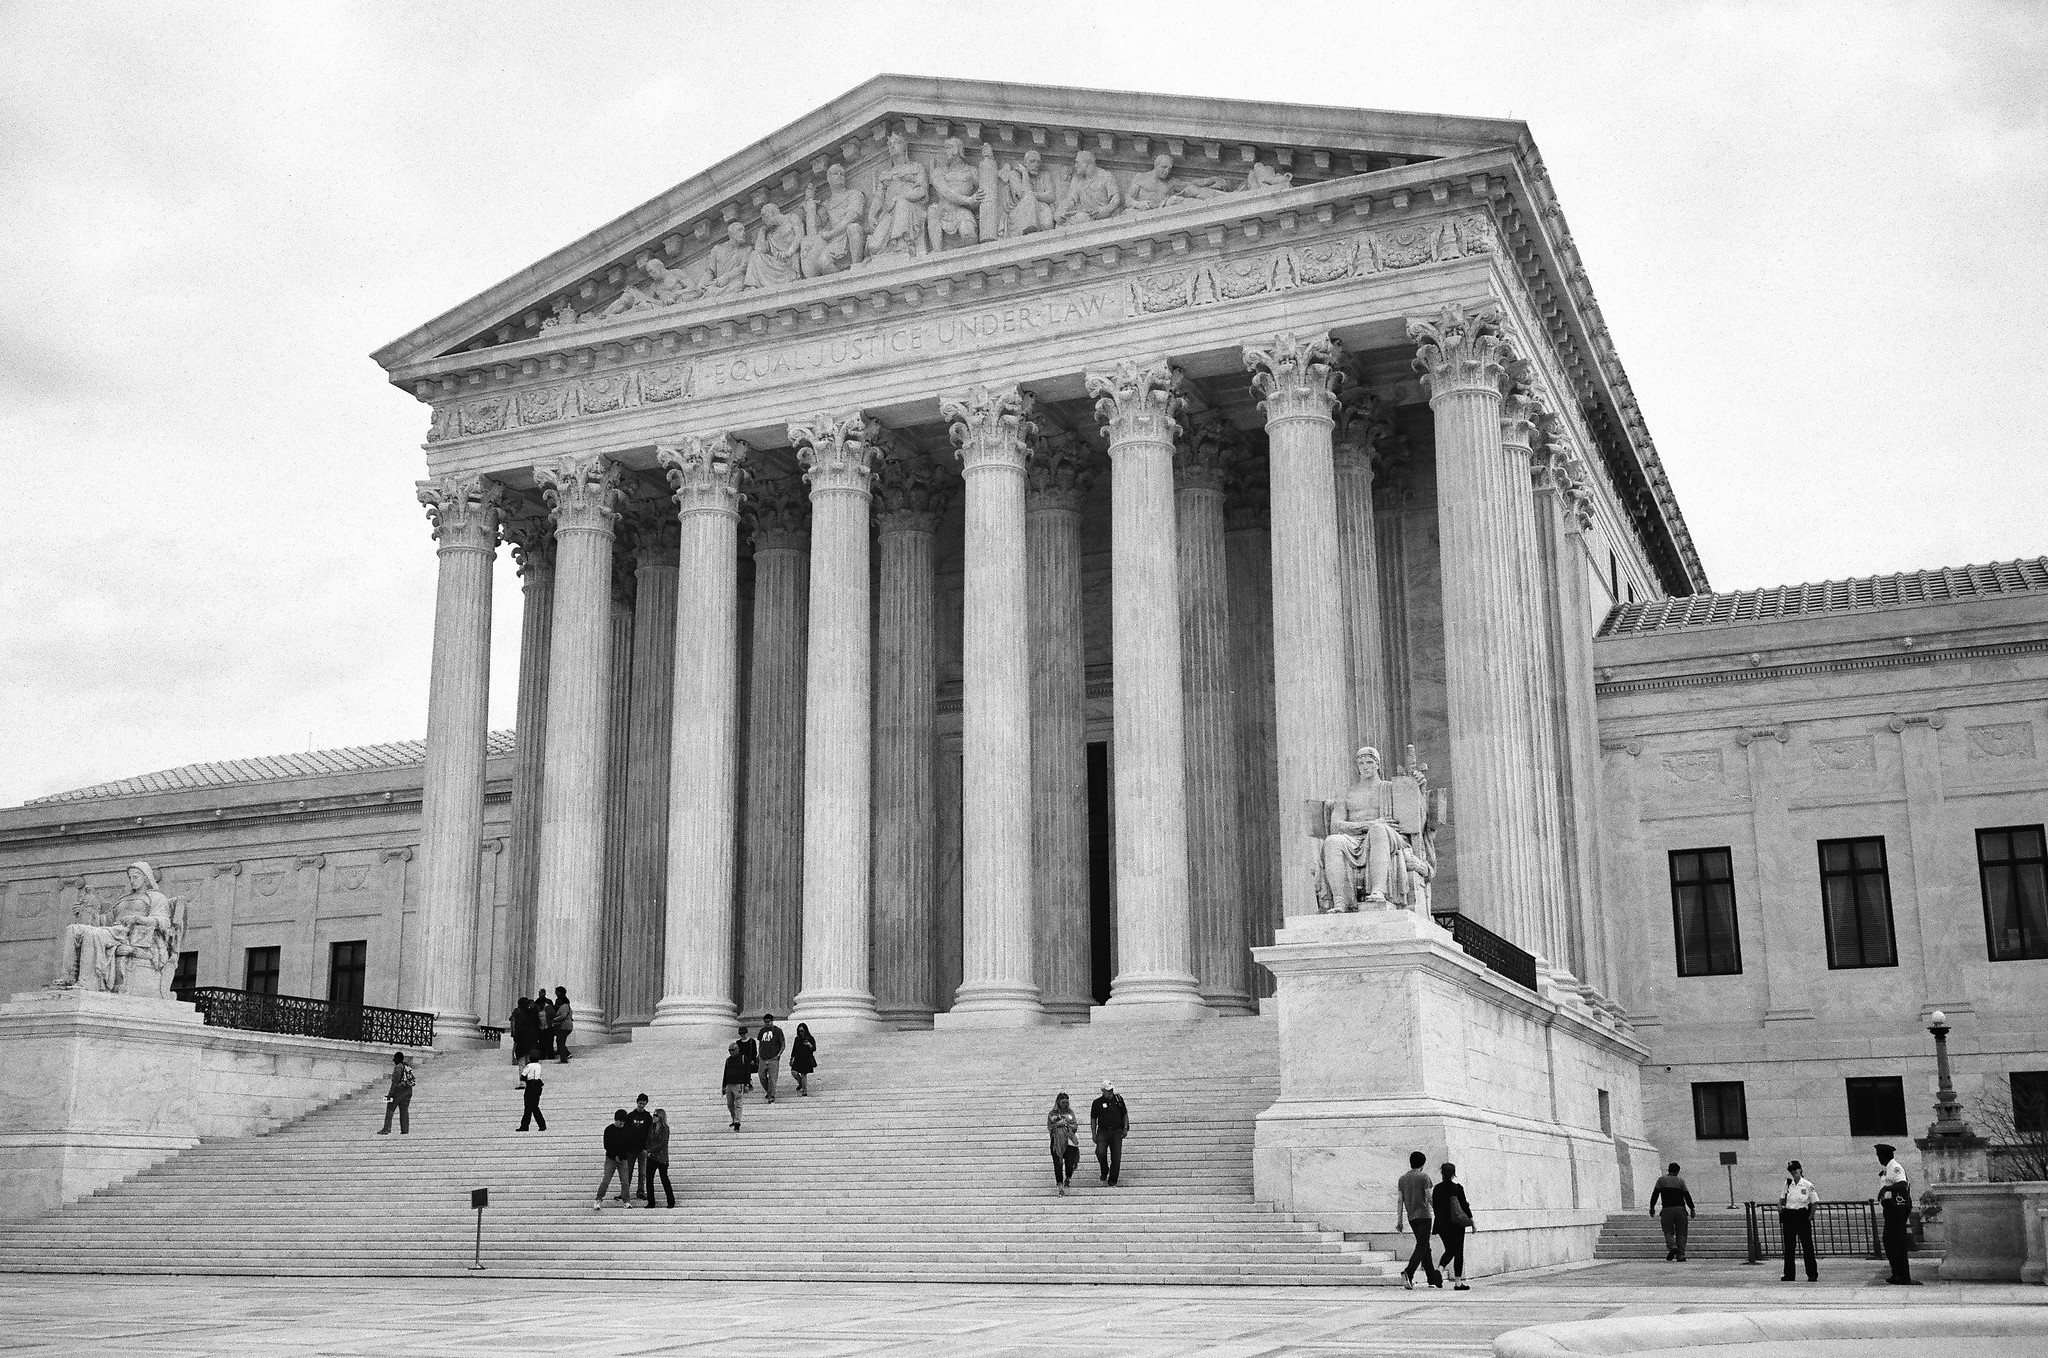 U.S. Supreme Court hears case on partisan court balance